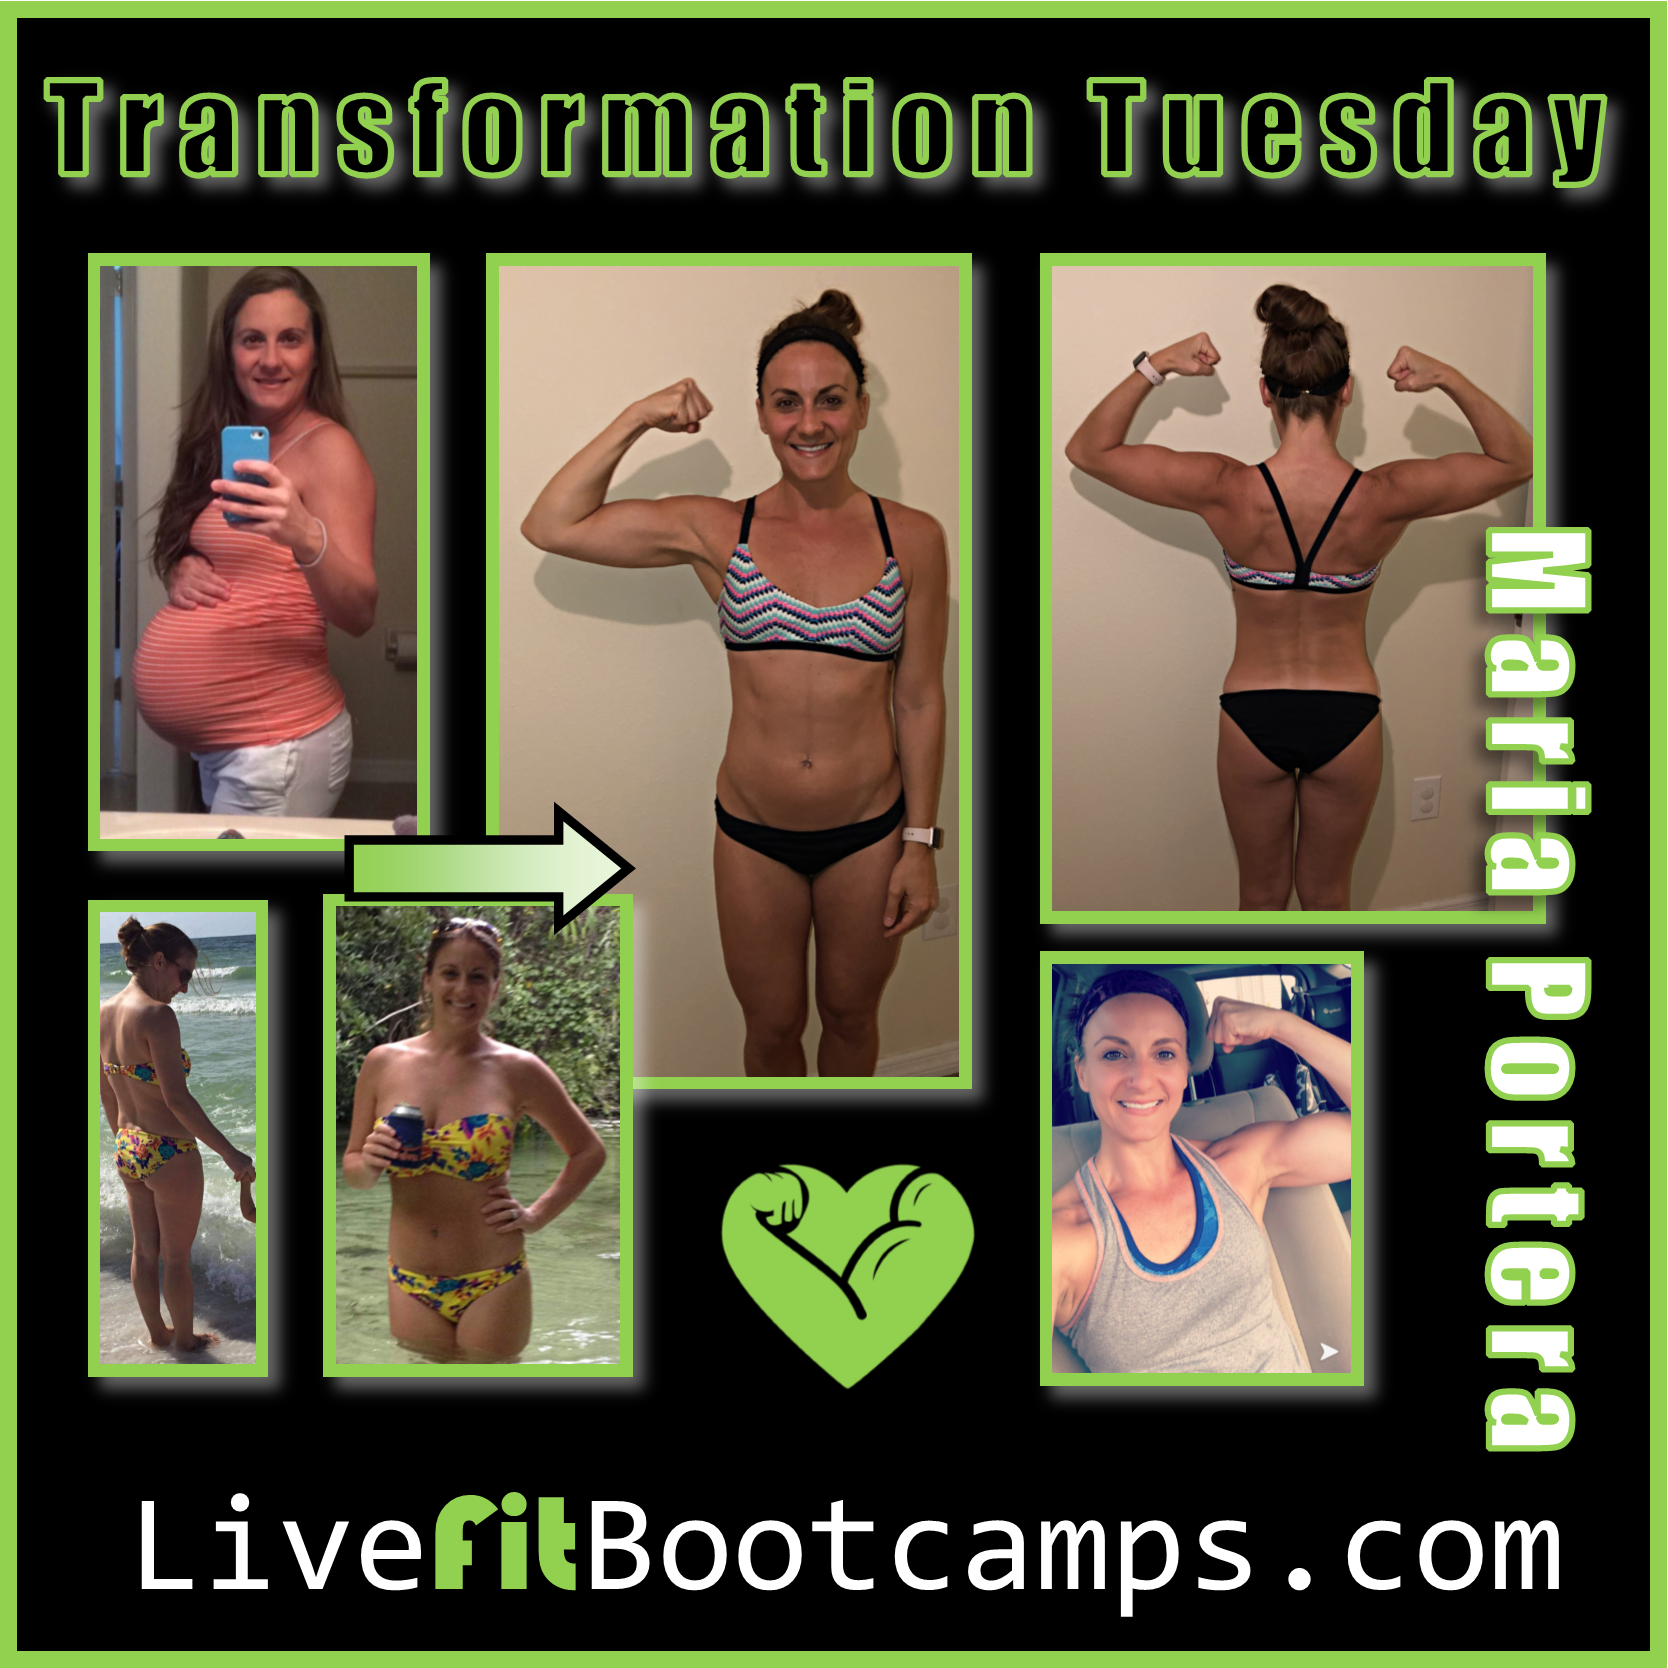 Maria Transformation Tuesday success before after live fit